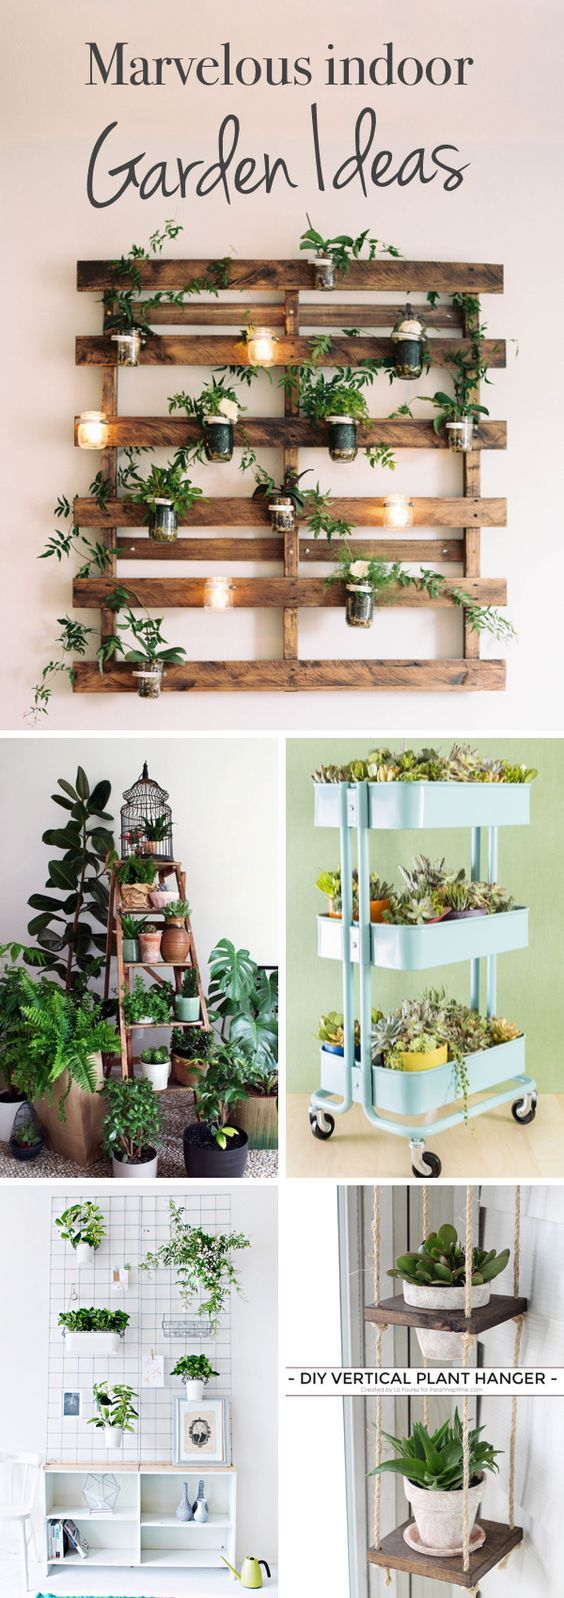 Photo of 20 Marvelous Indoor Garden Ideas Combating Lack of Space or Harsh Weathers!